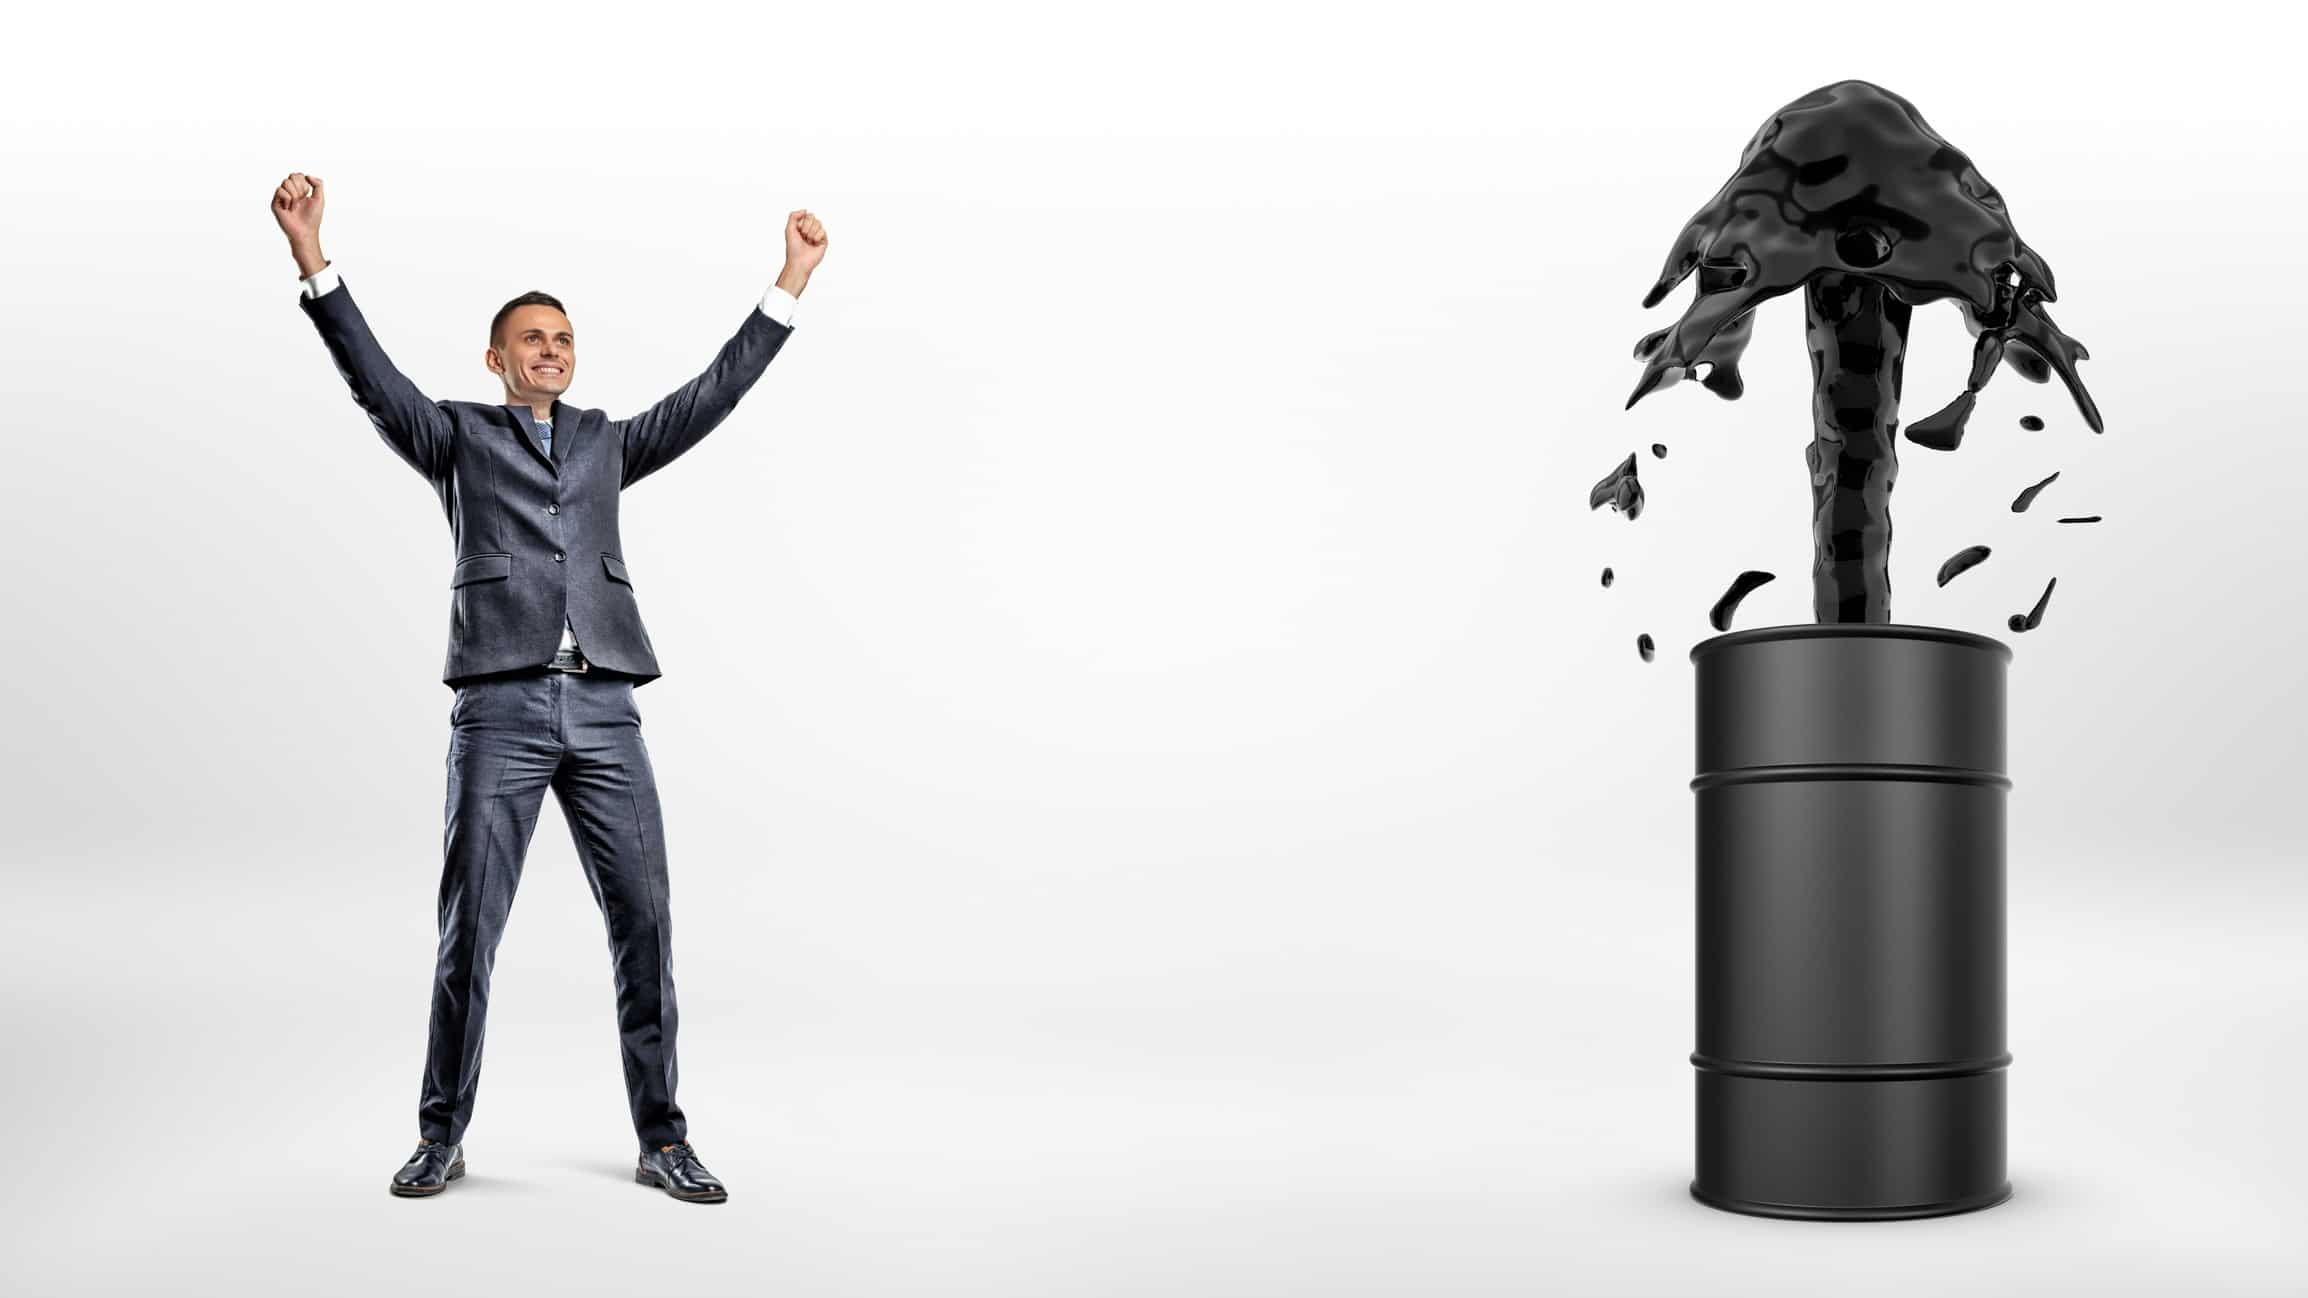 rising asx oil share price buy represented by business man celebrating next to oil barrel erupting with up arrow